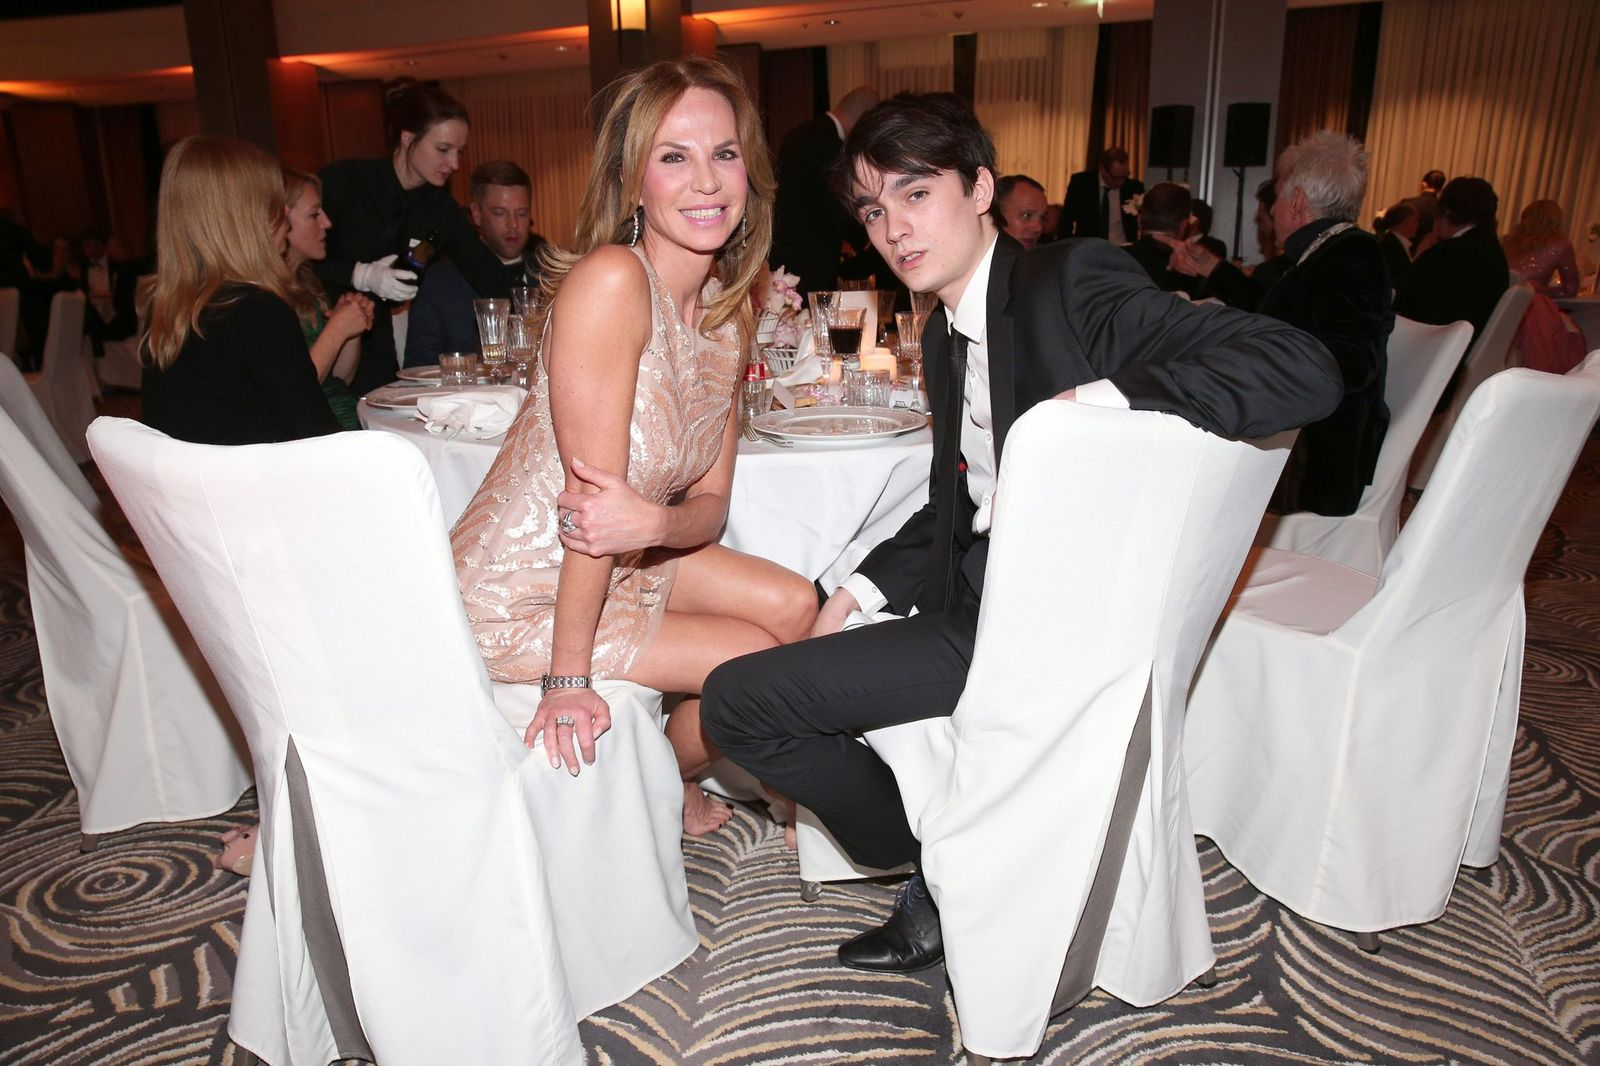 Rosalie Van Breemen et son fils Alain-Fabien Delon | Photo : Getty Images